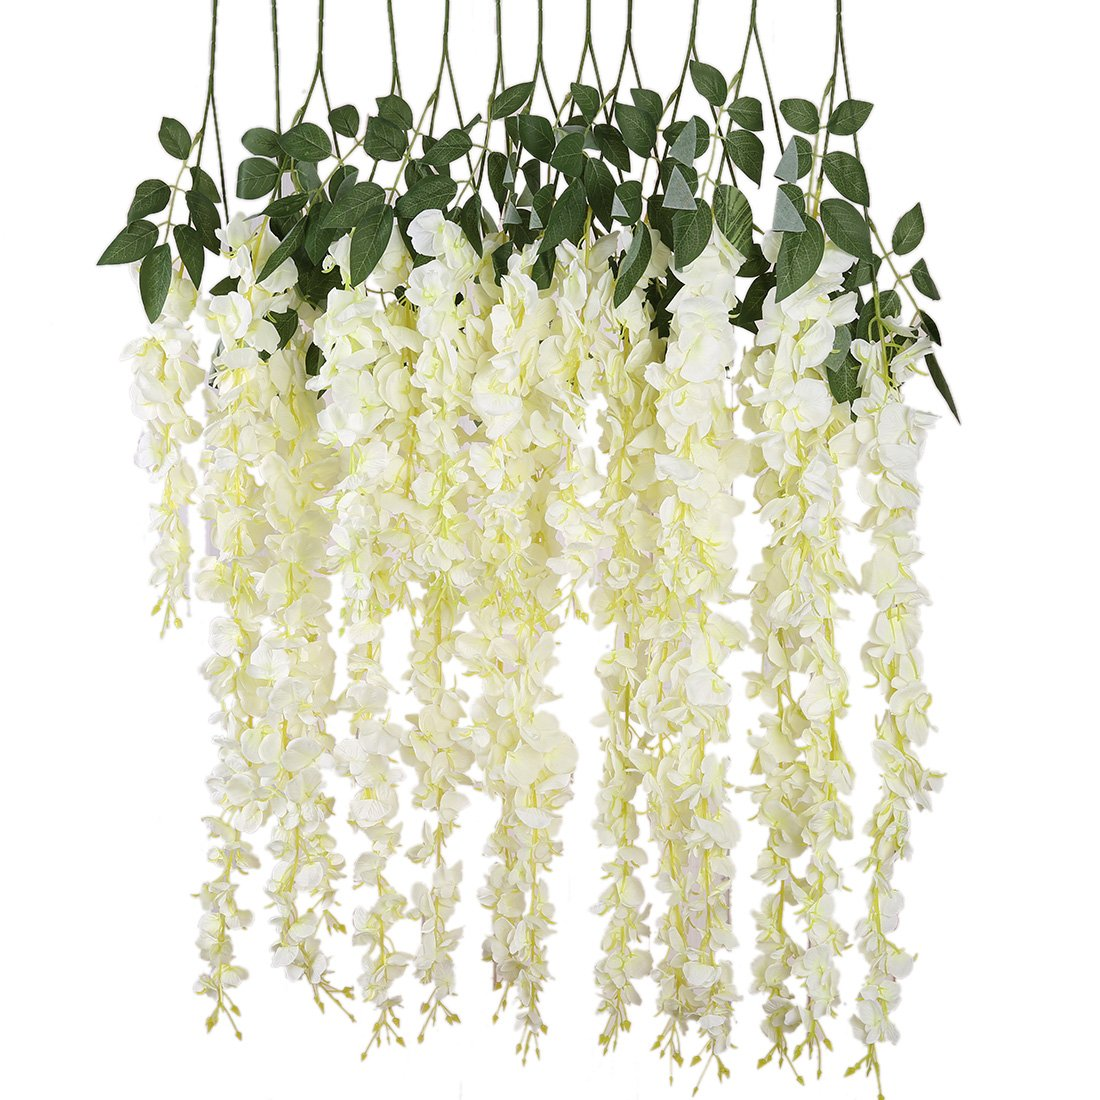 Luyue 3.18 Feet Artificial Silk Wisteria Vine Ratta Silk Hanging Flower Wedding Decor,6 Pieces,(White) by Luyue